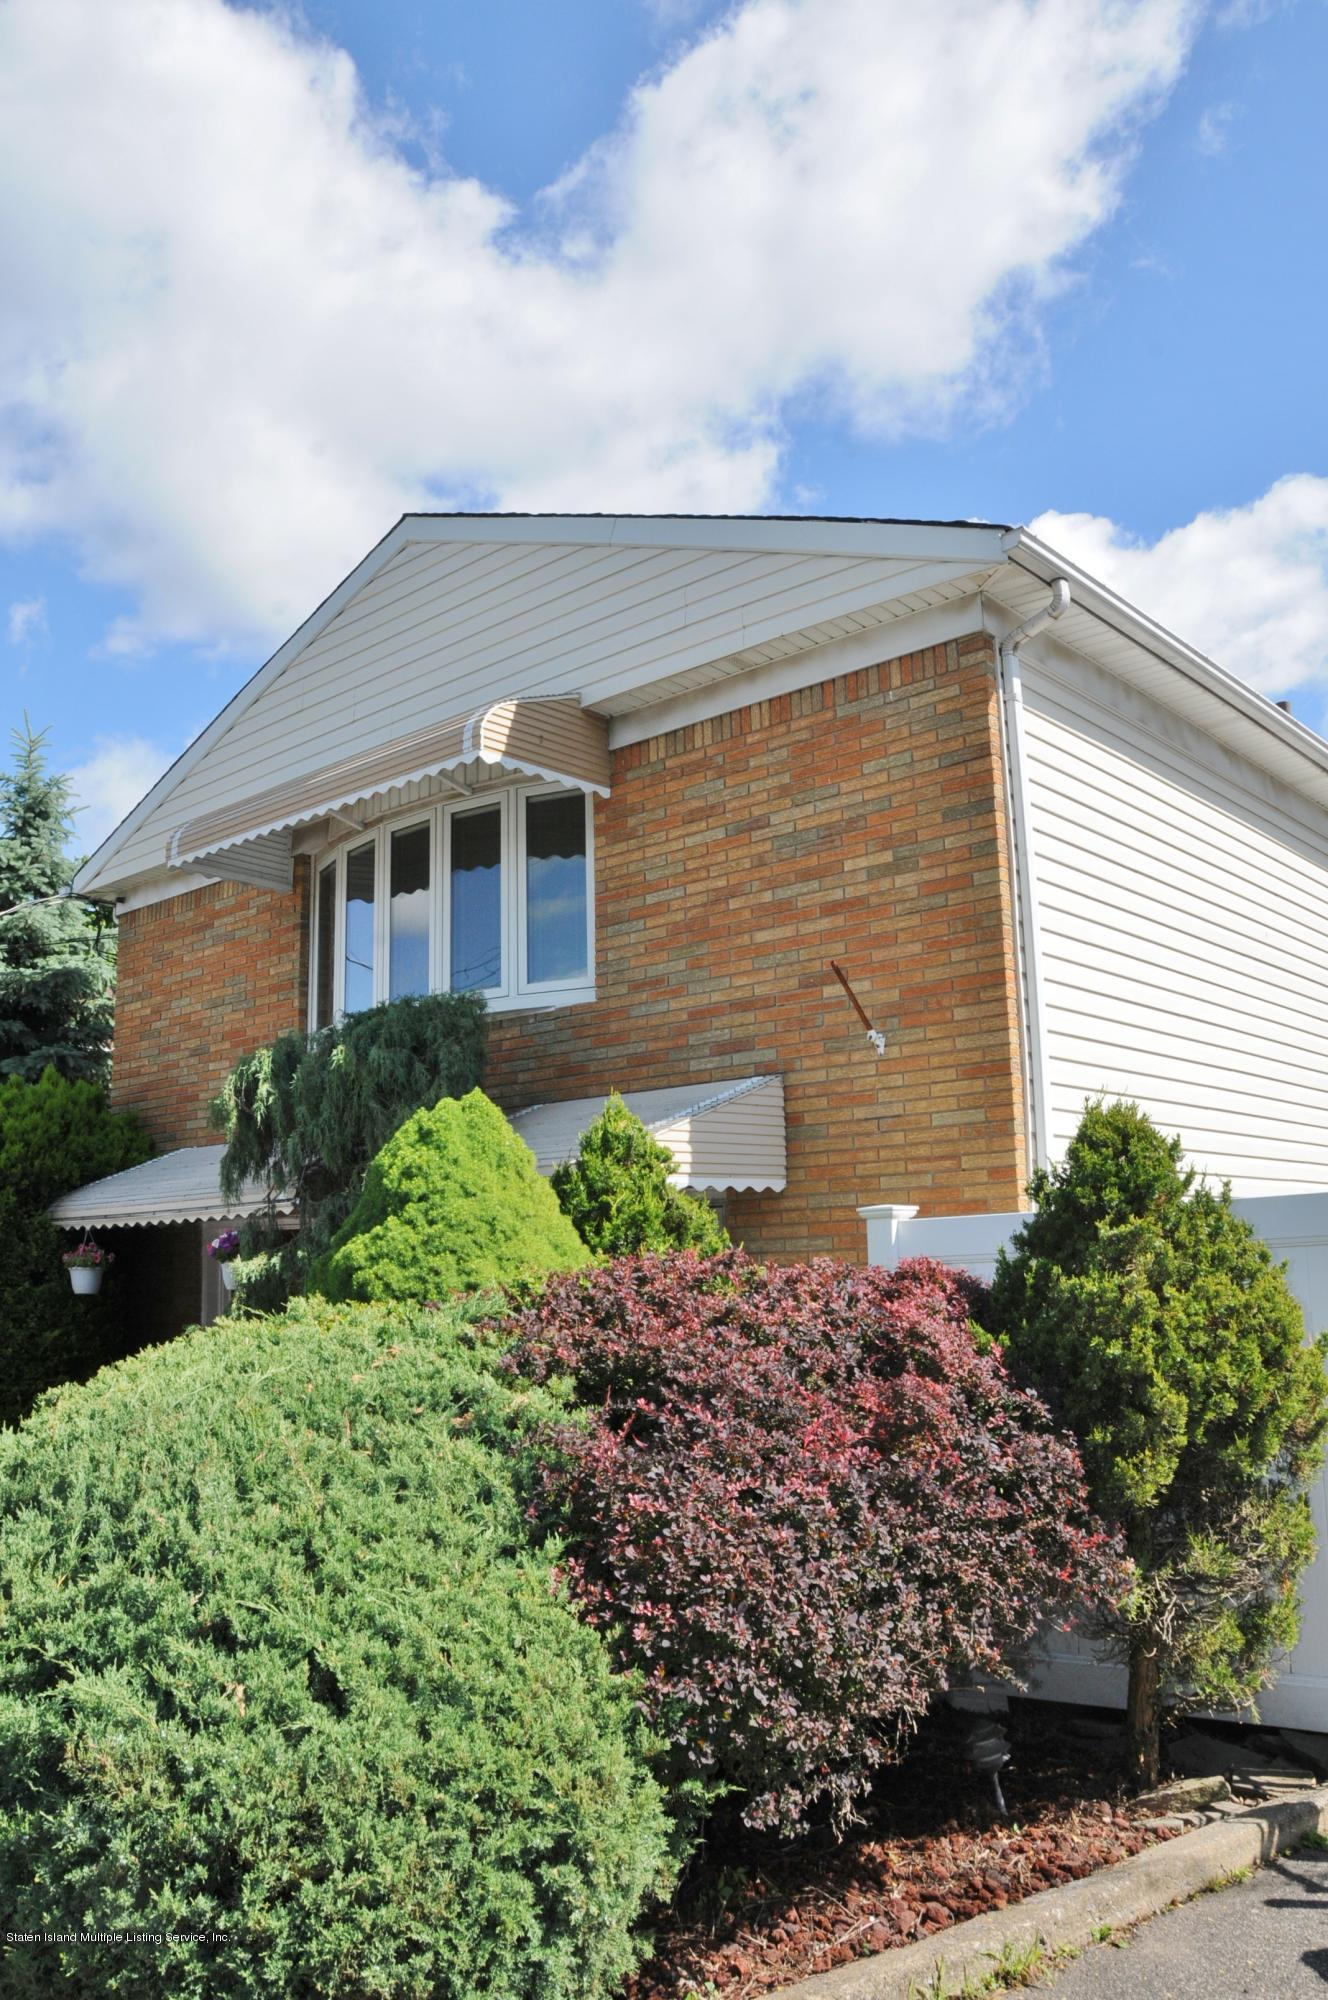 Single Family - Detached 41 Prices Lane  Staten Island, NY 10314, MLS-1129754-3